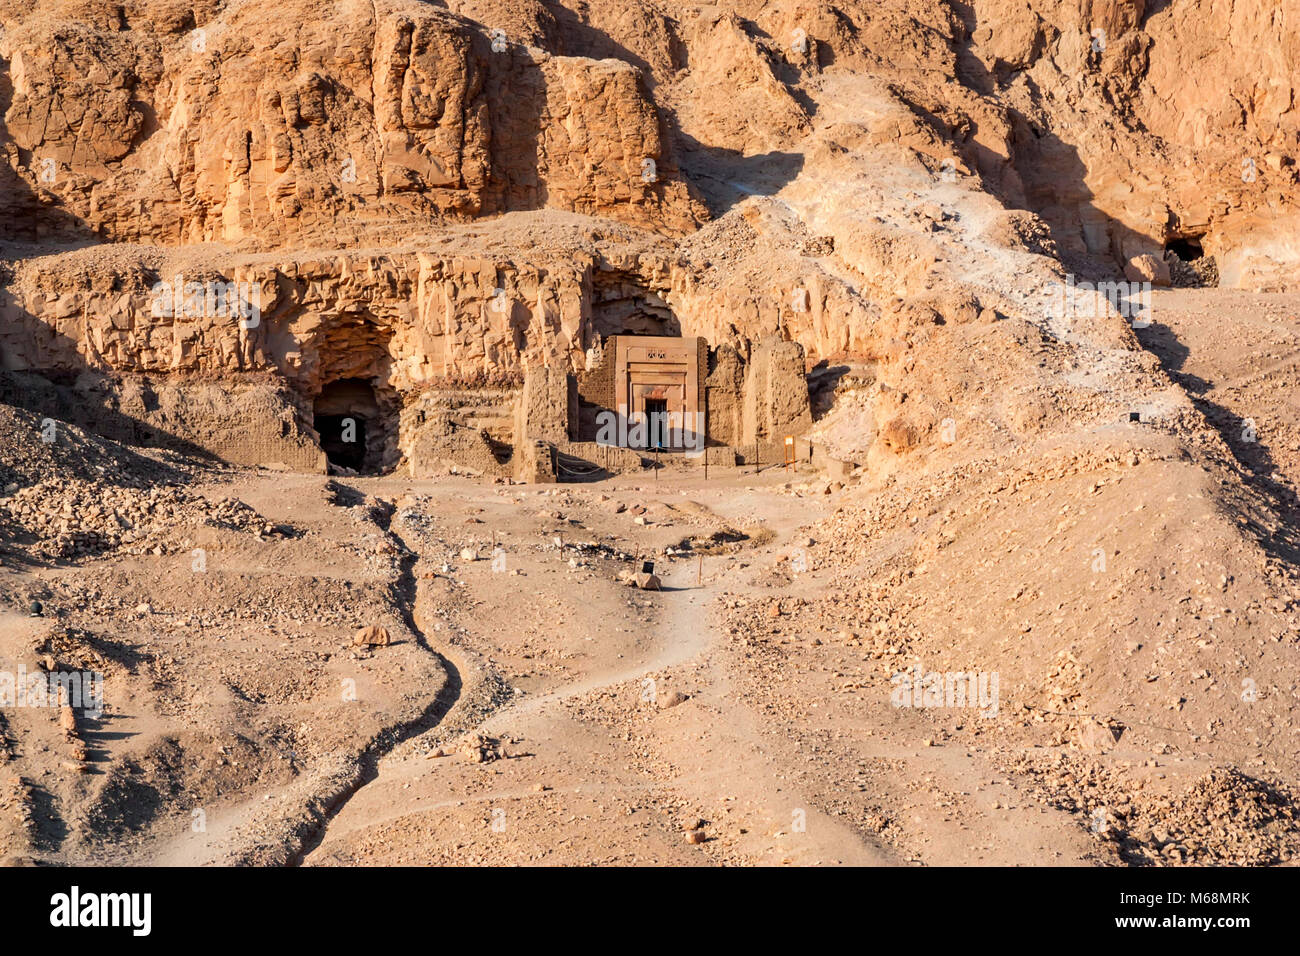 Entrance to tomb of Hatshepsut temple builders - Stock Image